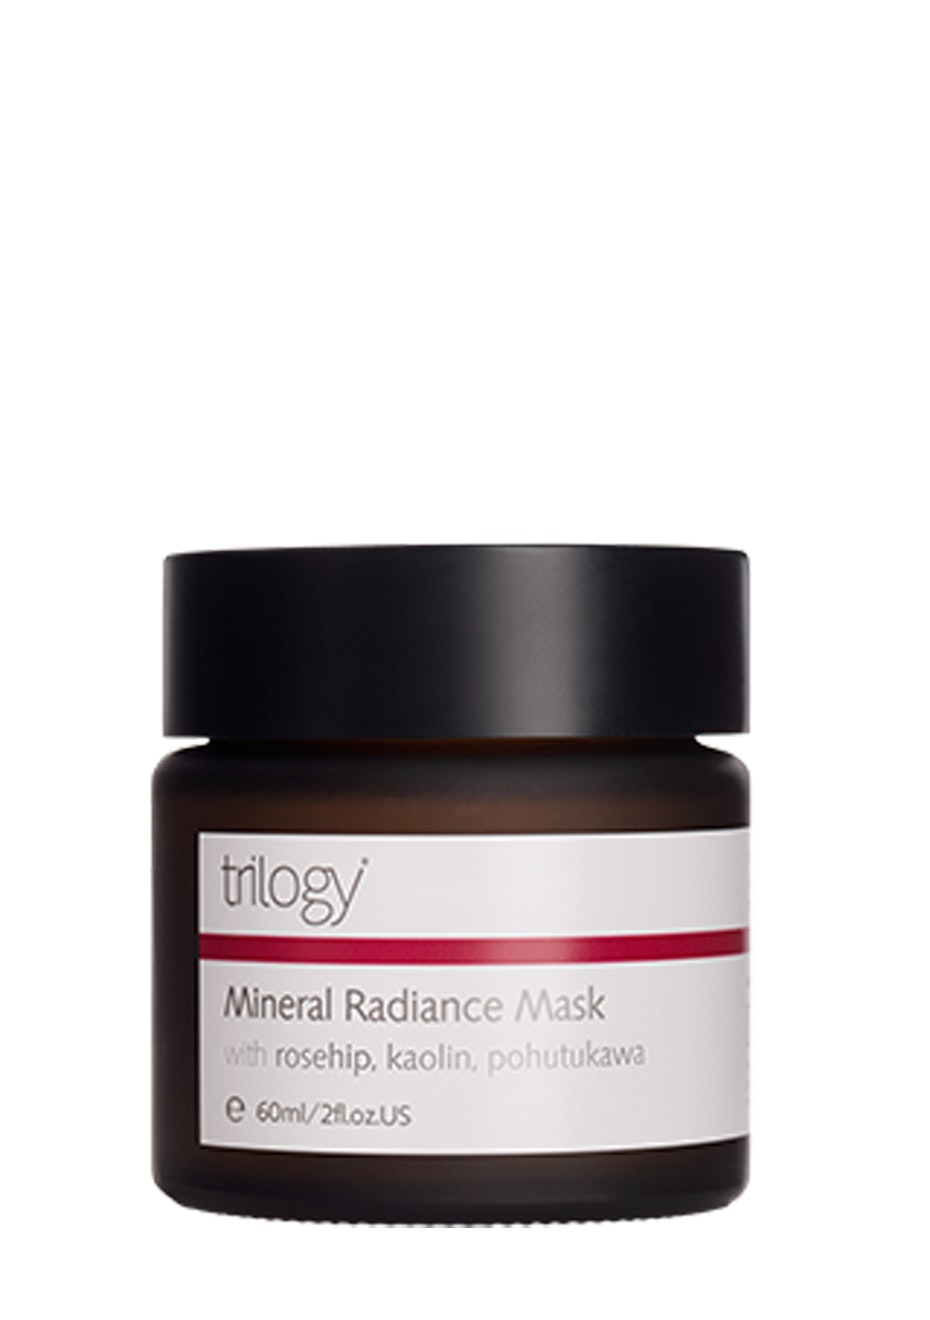 Trilogy - Mineral Radiance Mask (60ml)